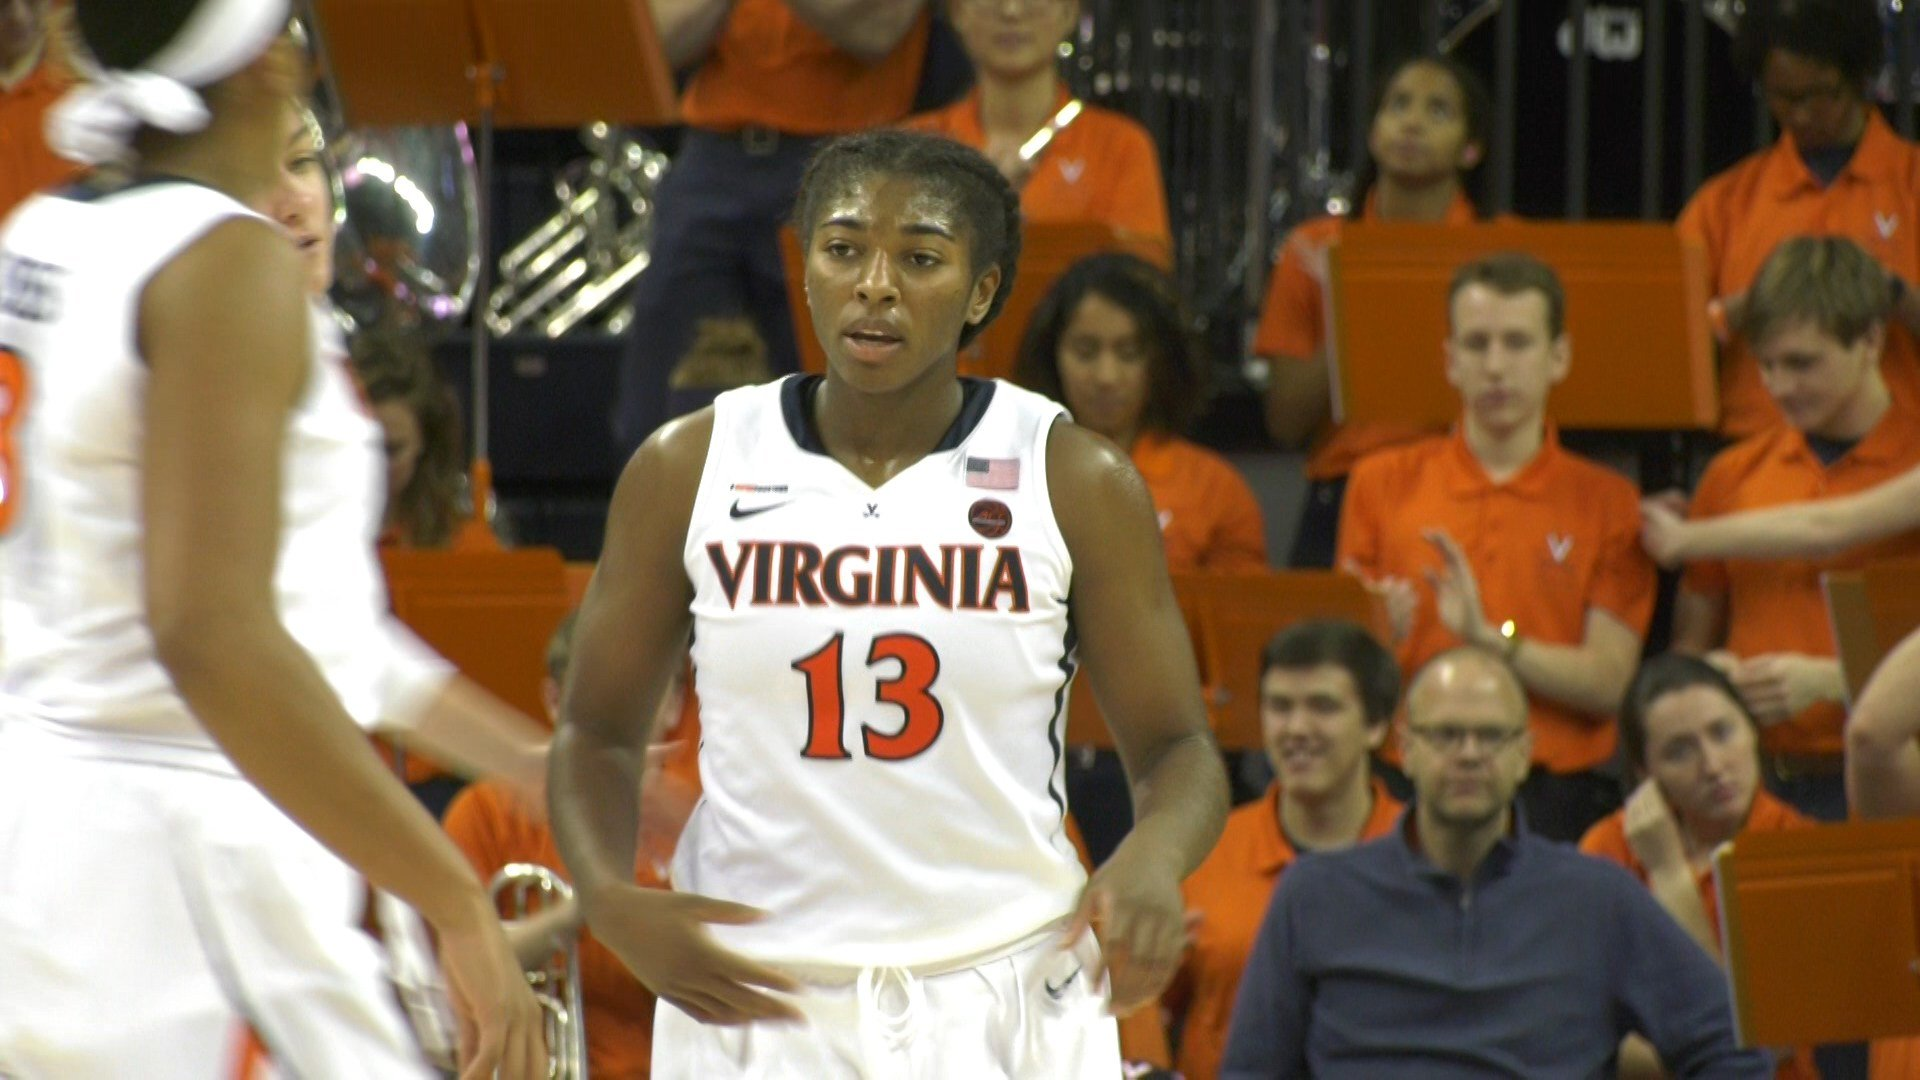 Sophomore guard Jocelyn Willoughby led the 'Hoos with 18 points and 11 rebounds